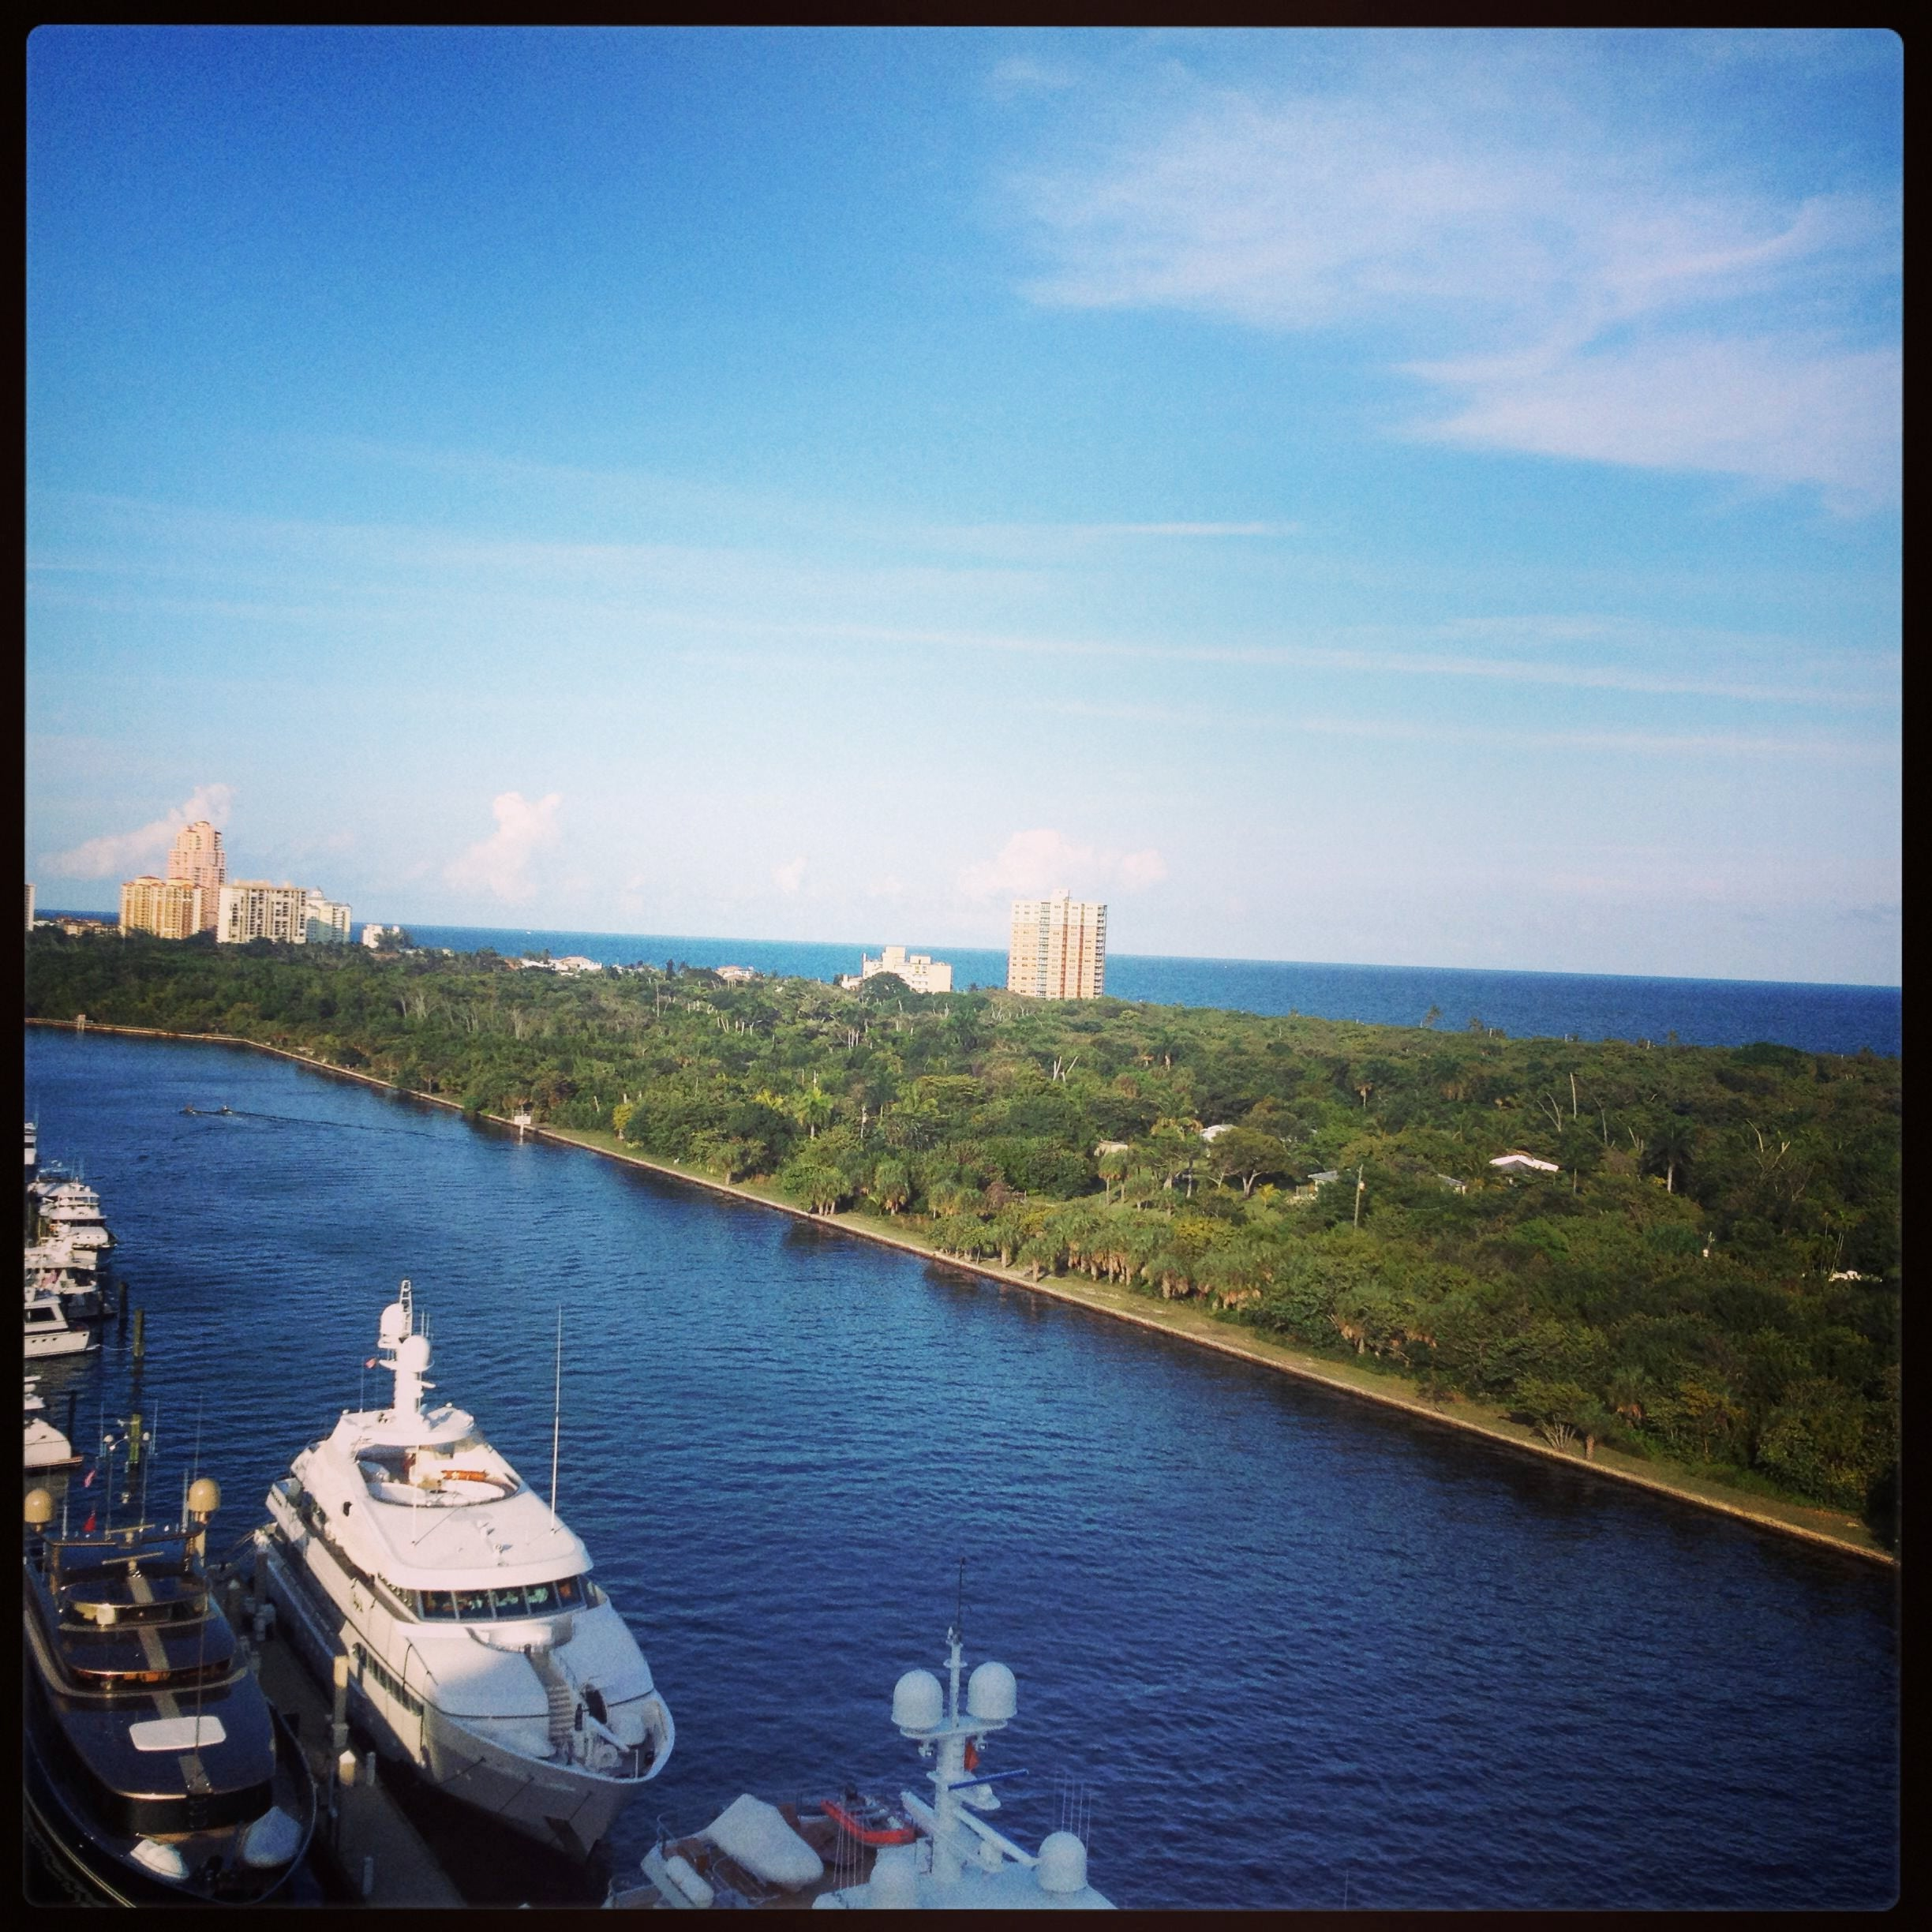 miami view, ft. lauderdale, marissa hagmeyer, boats